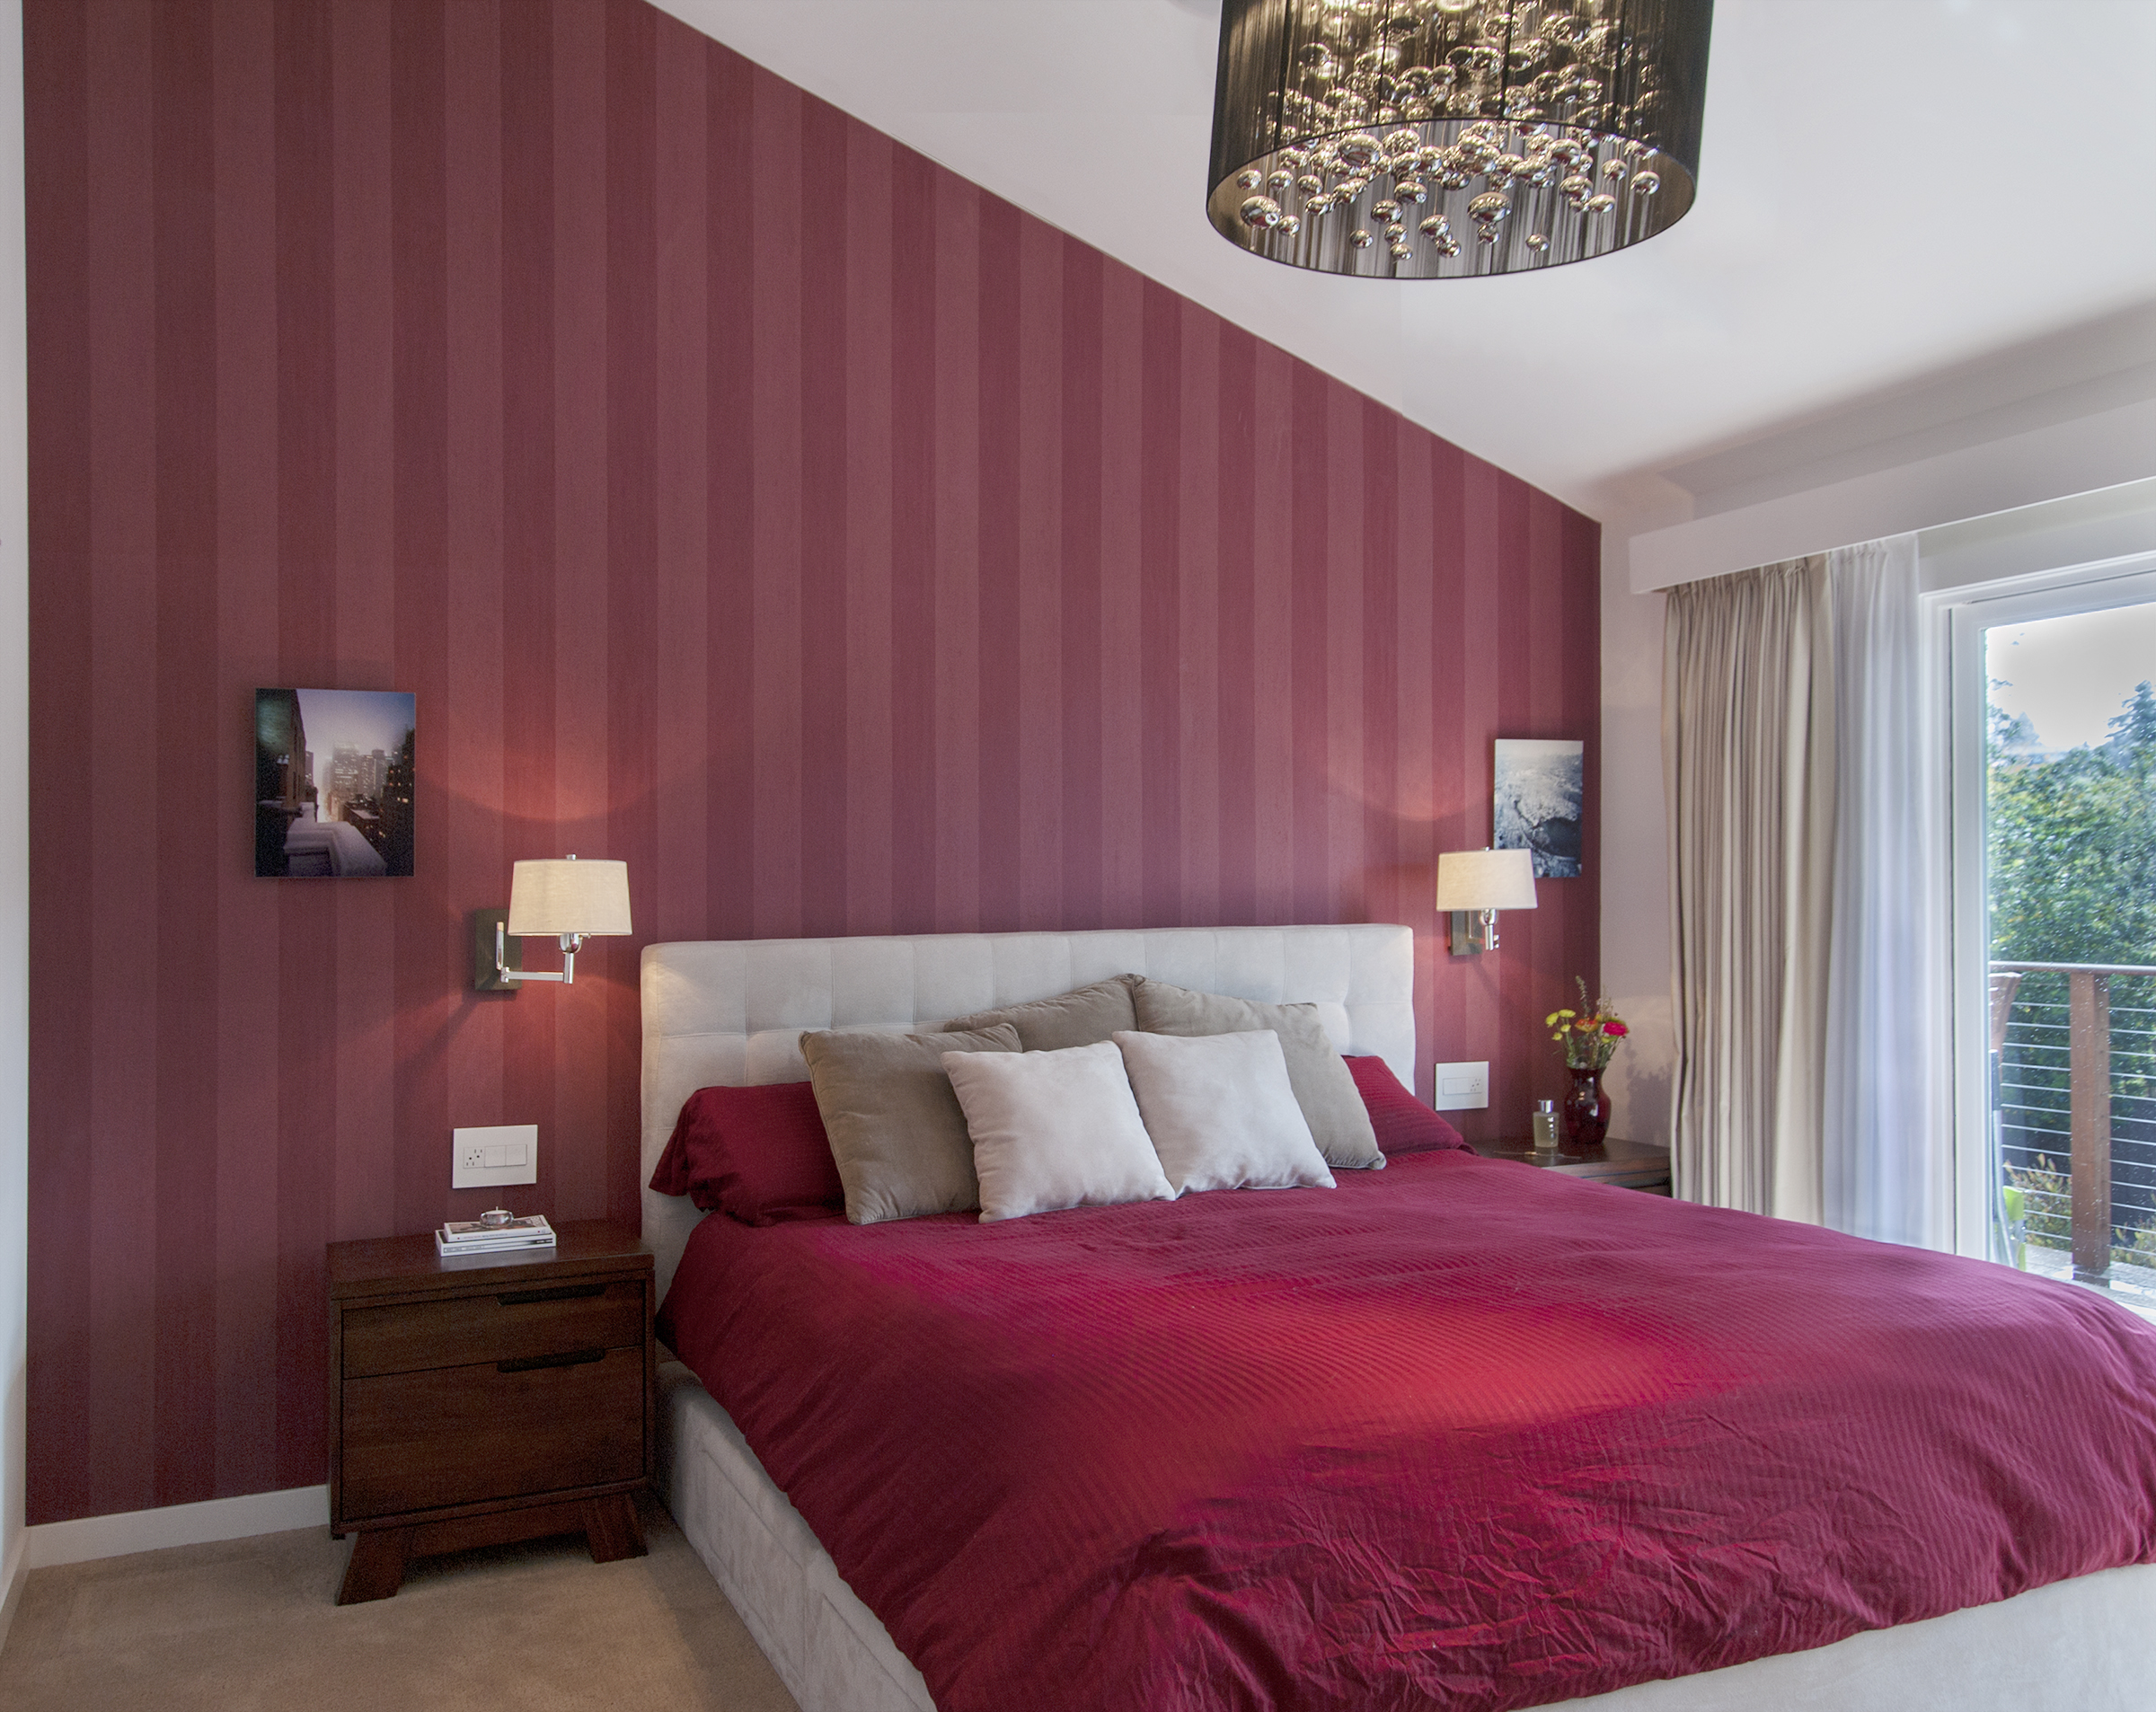 Bedroom headboard covered with red wallpaper